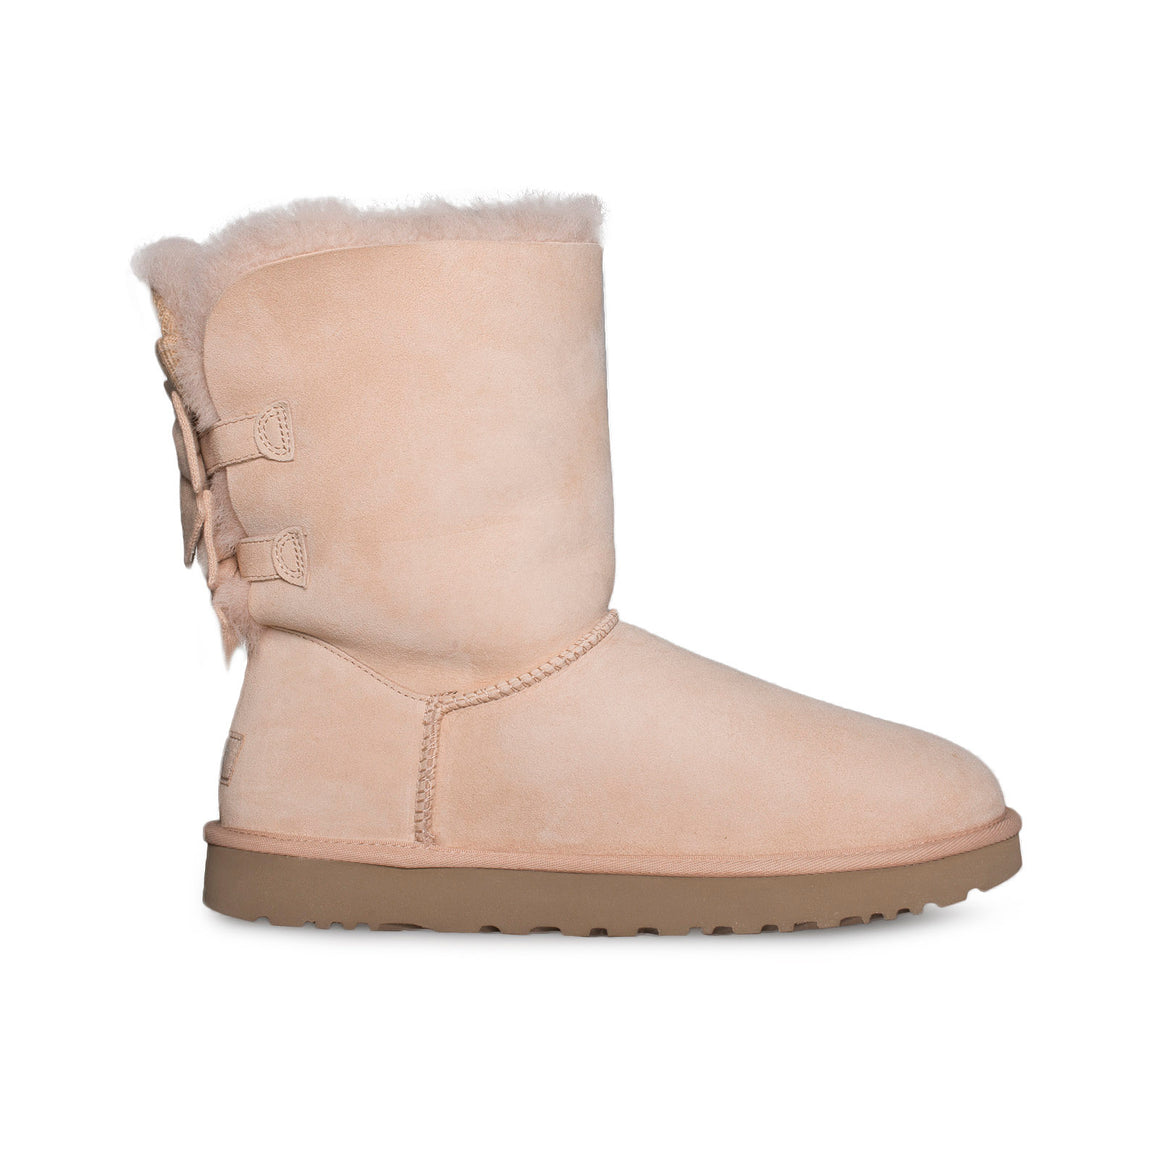 UGG Bailey Bow Short Ruffle Amber Light Boots - Women's